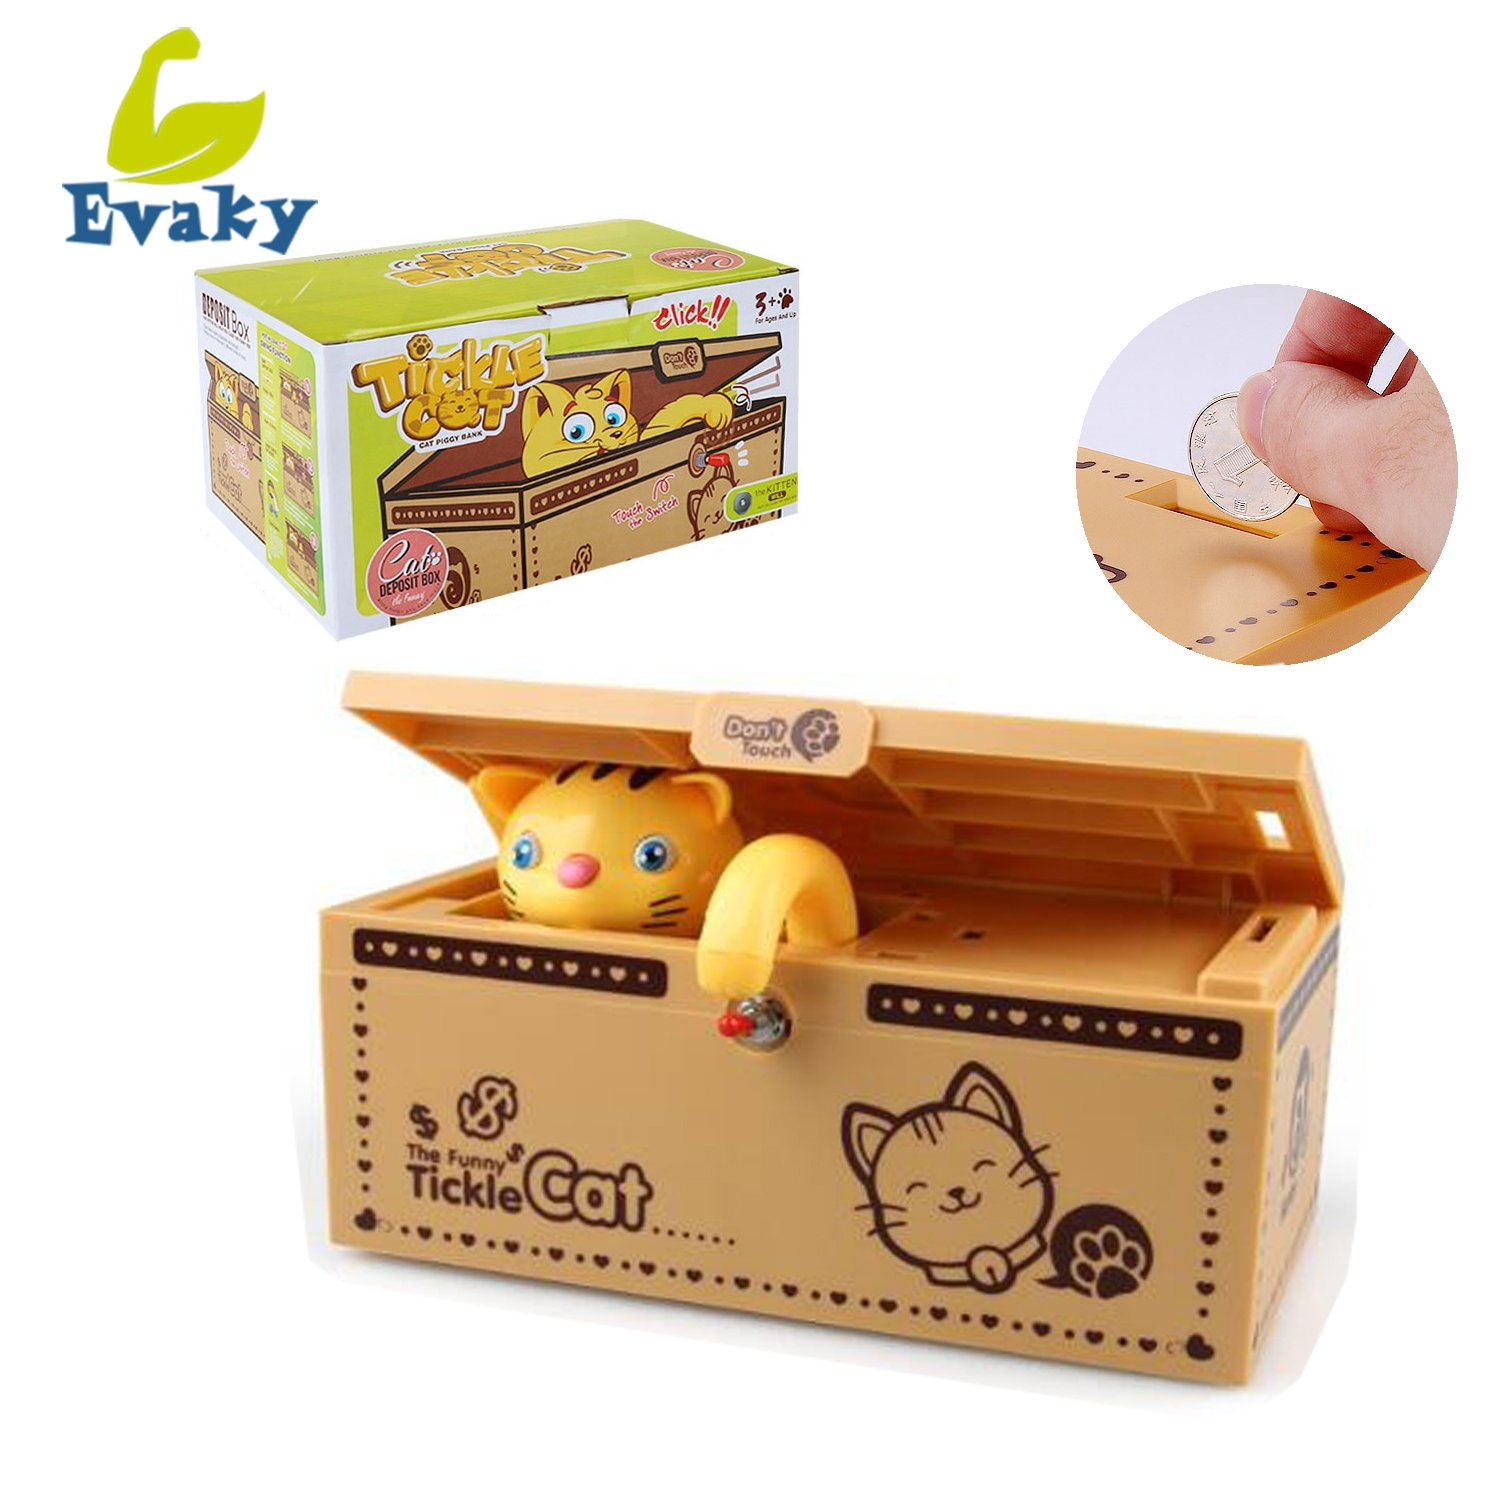 Evaky Creative Don't Touch Tiger Useless Box Unique Musical Wooden Box, Adult Gifts and Practical Jokes Funny toys for friends and kids